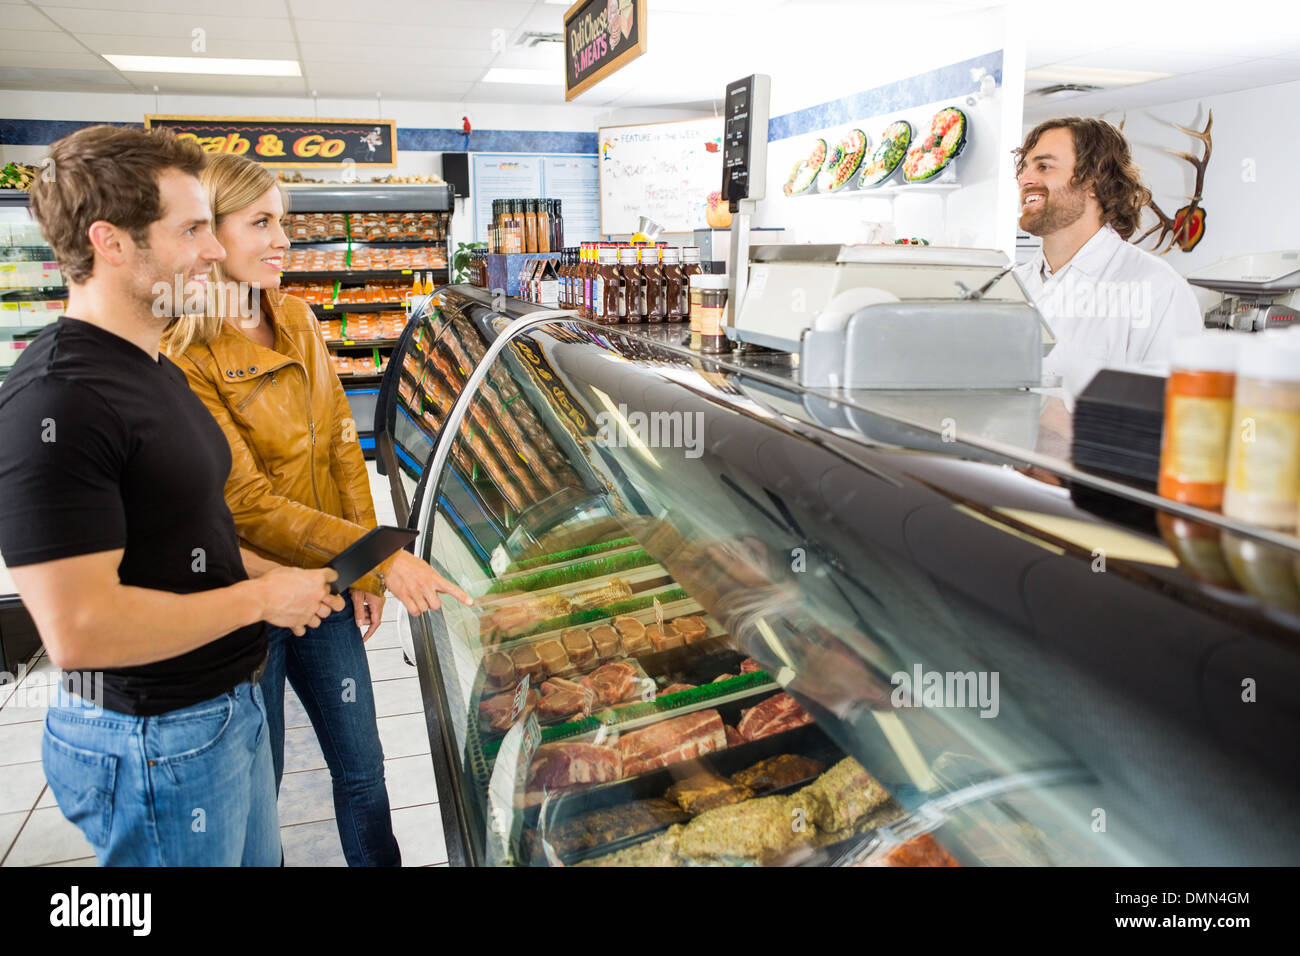 Salesman Attending Customers At Butcher's Shop Stock Photo